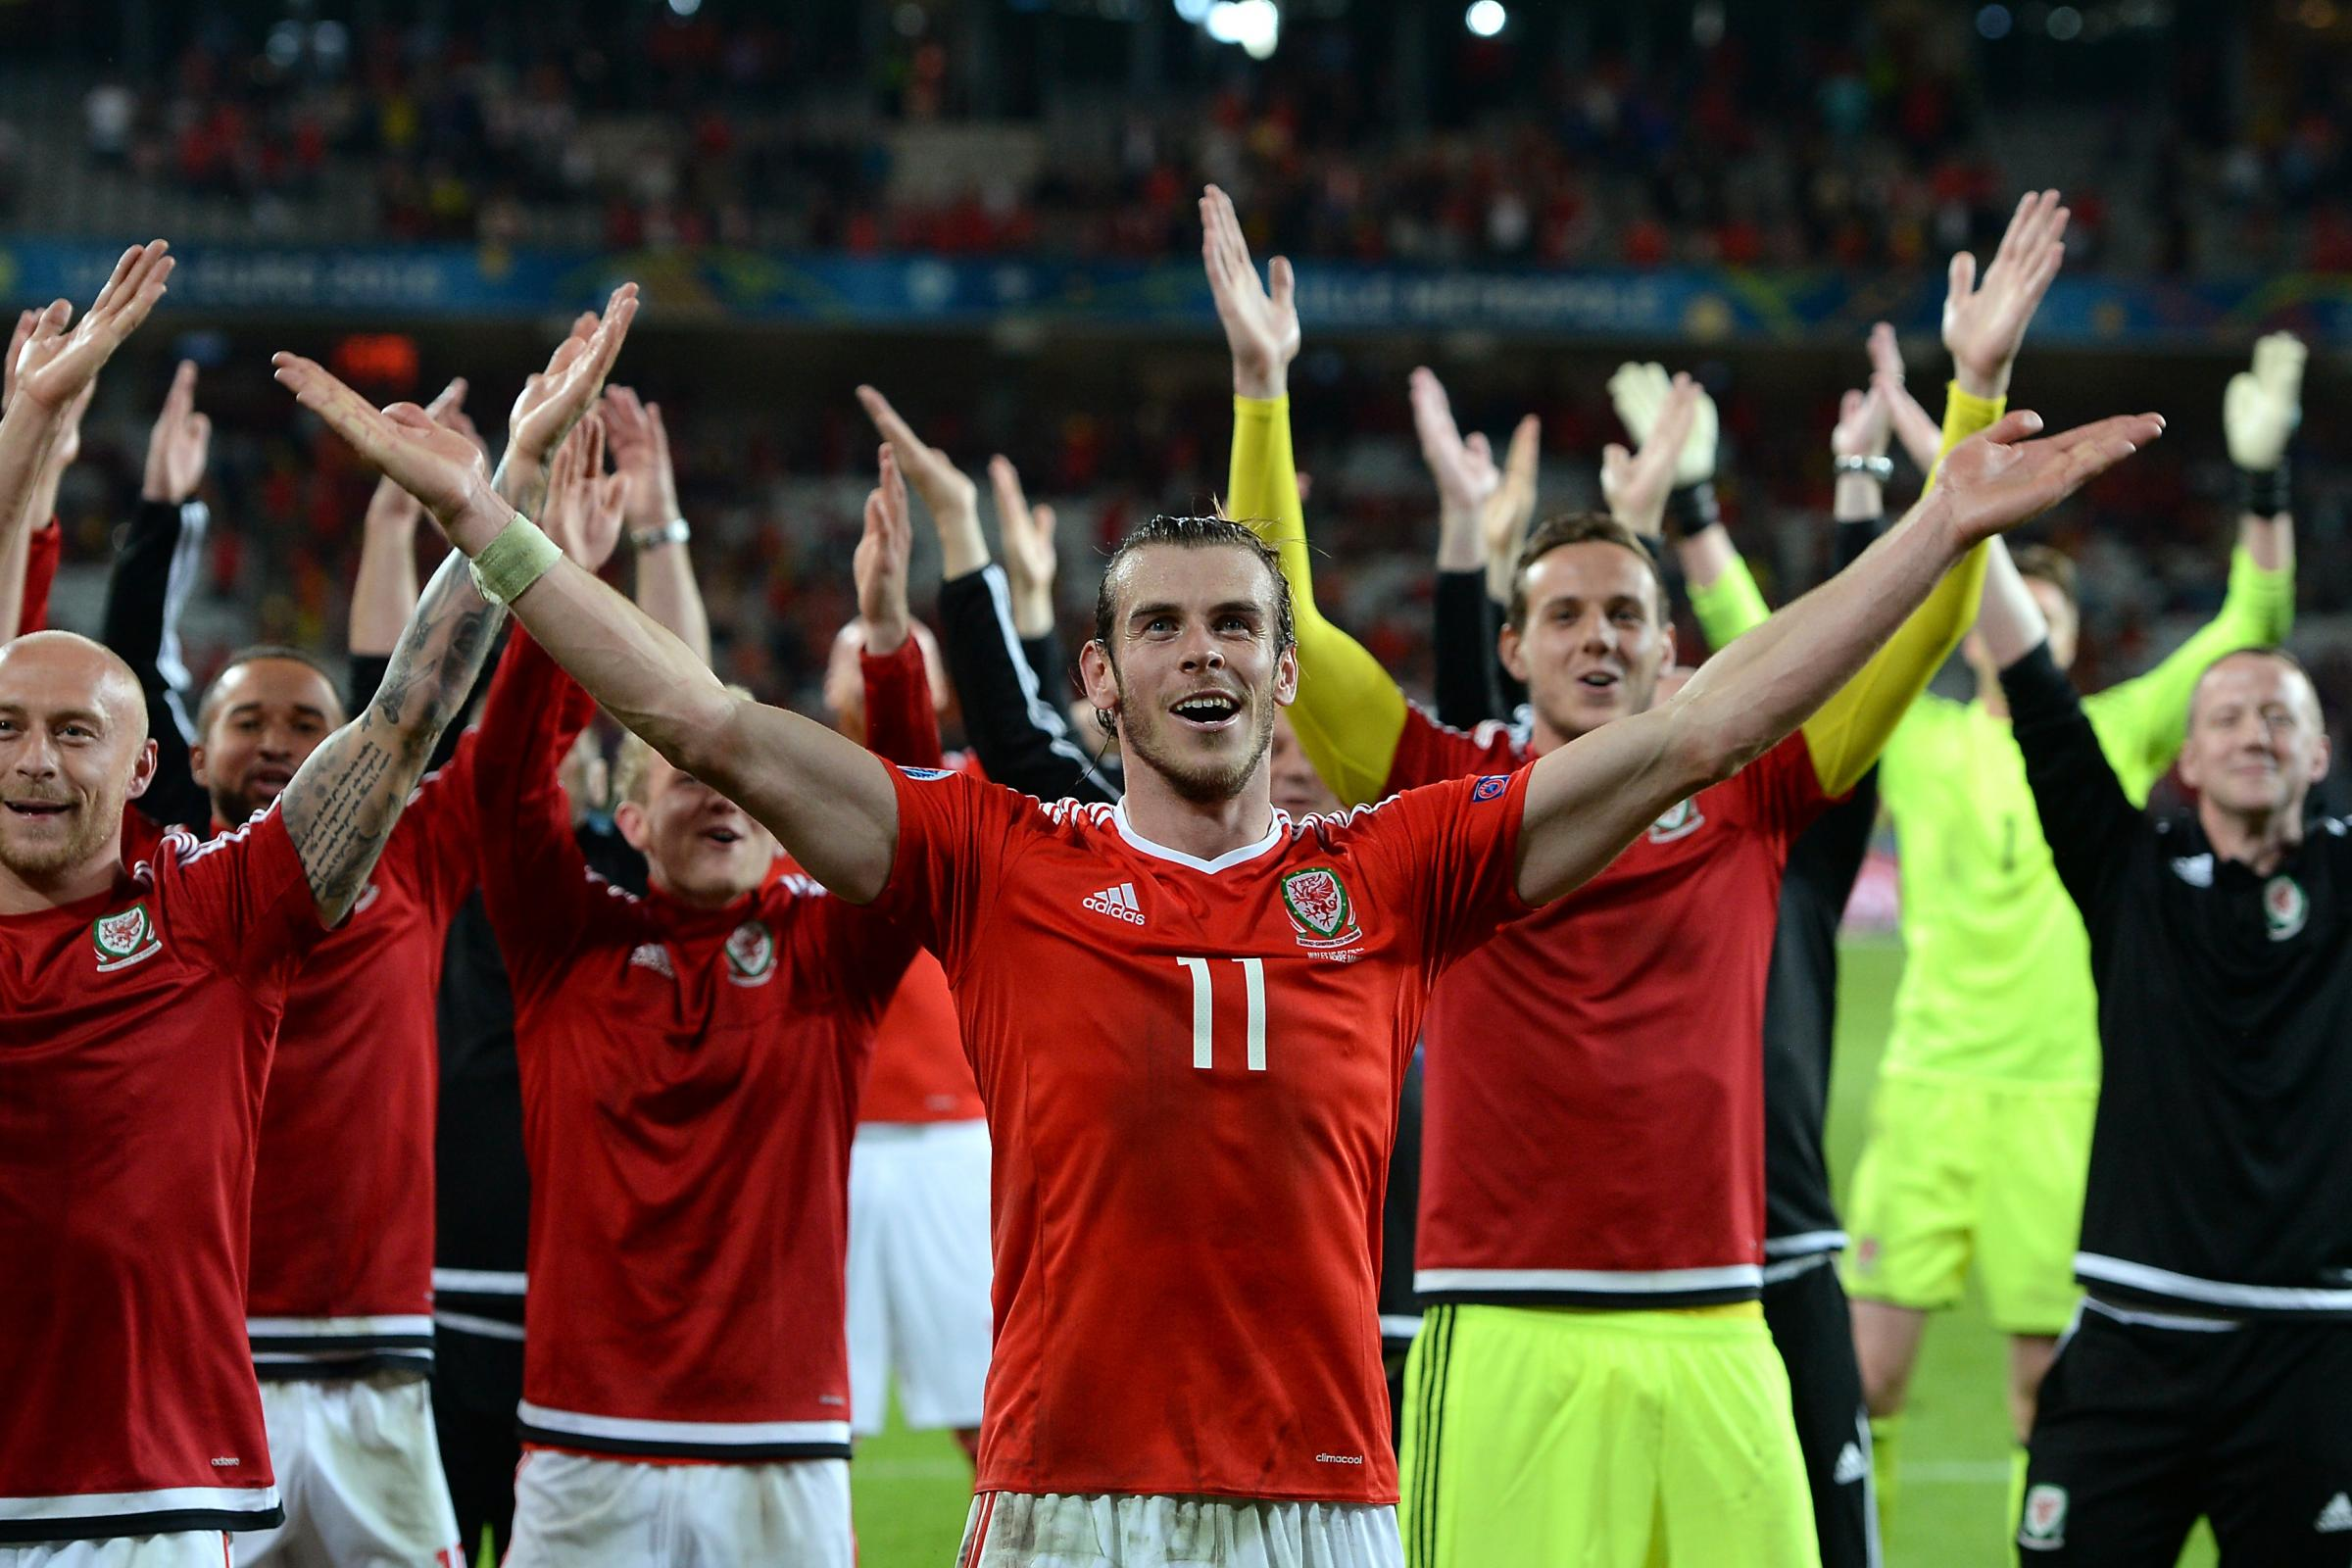 Qualifying for Euros could top 2016, says Gareth Bale - Dudley News